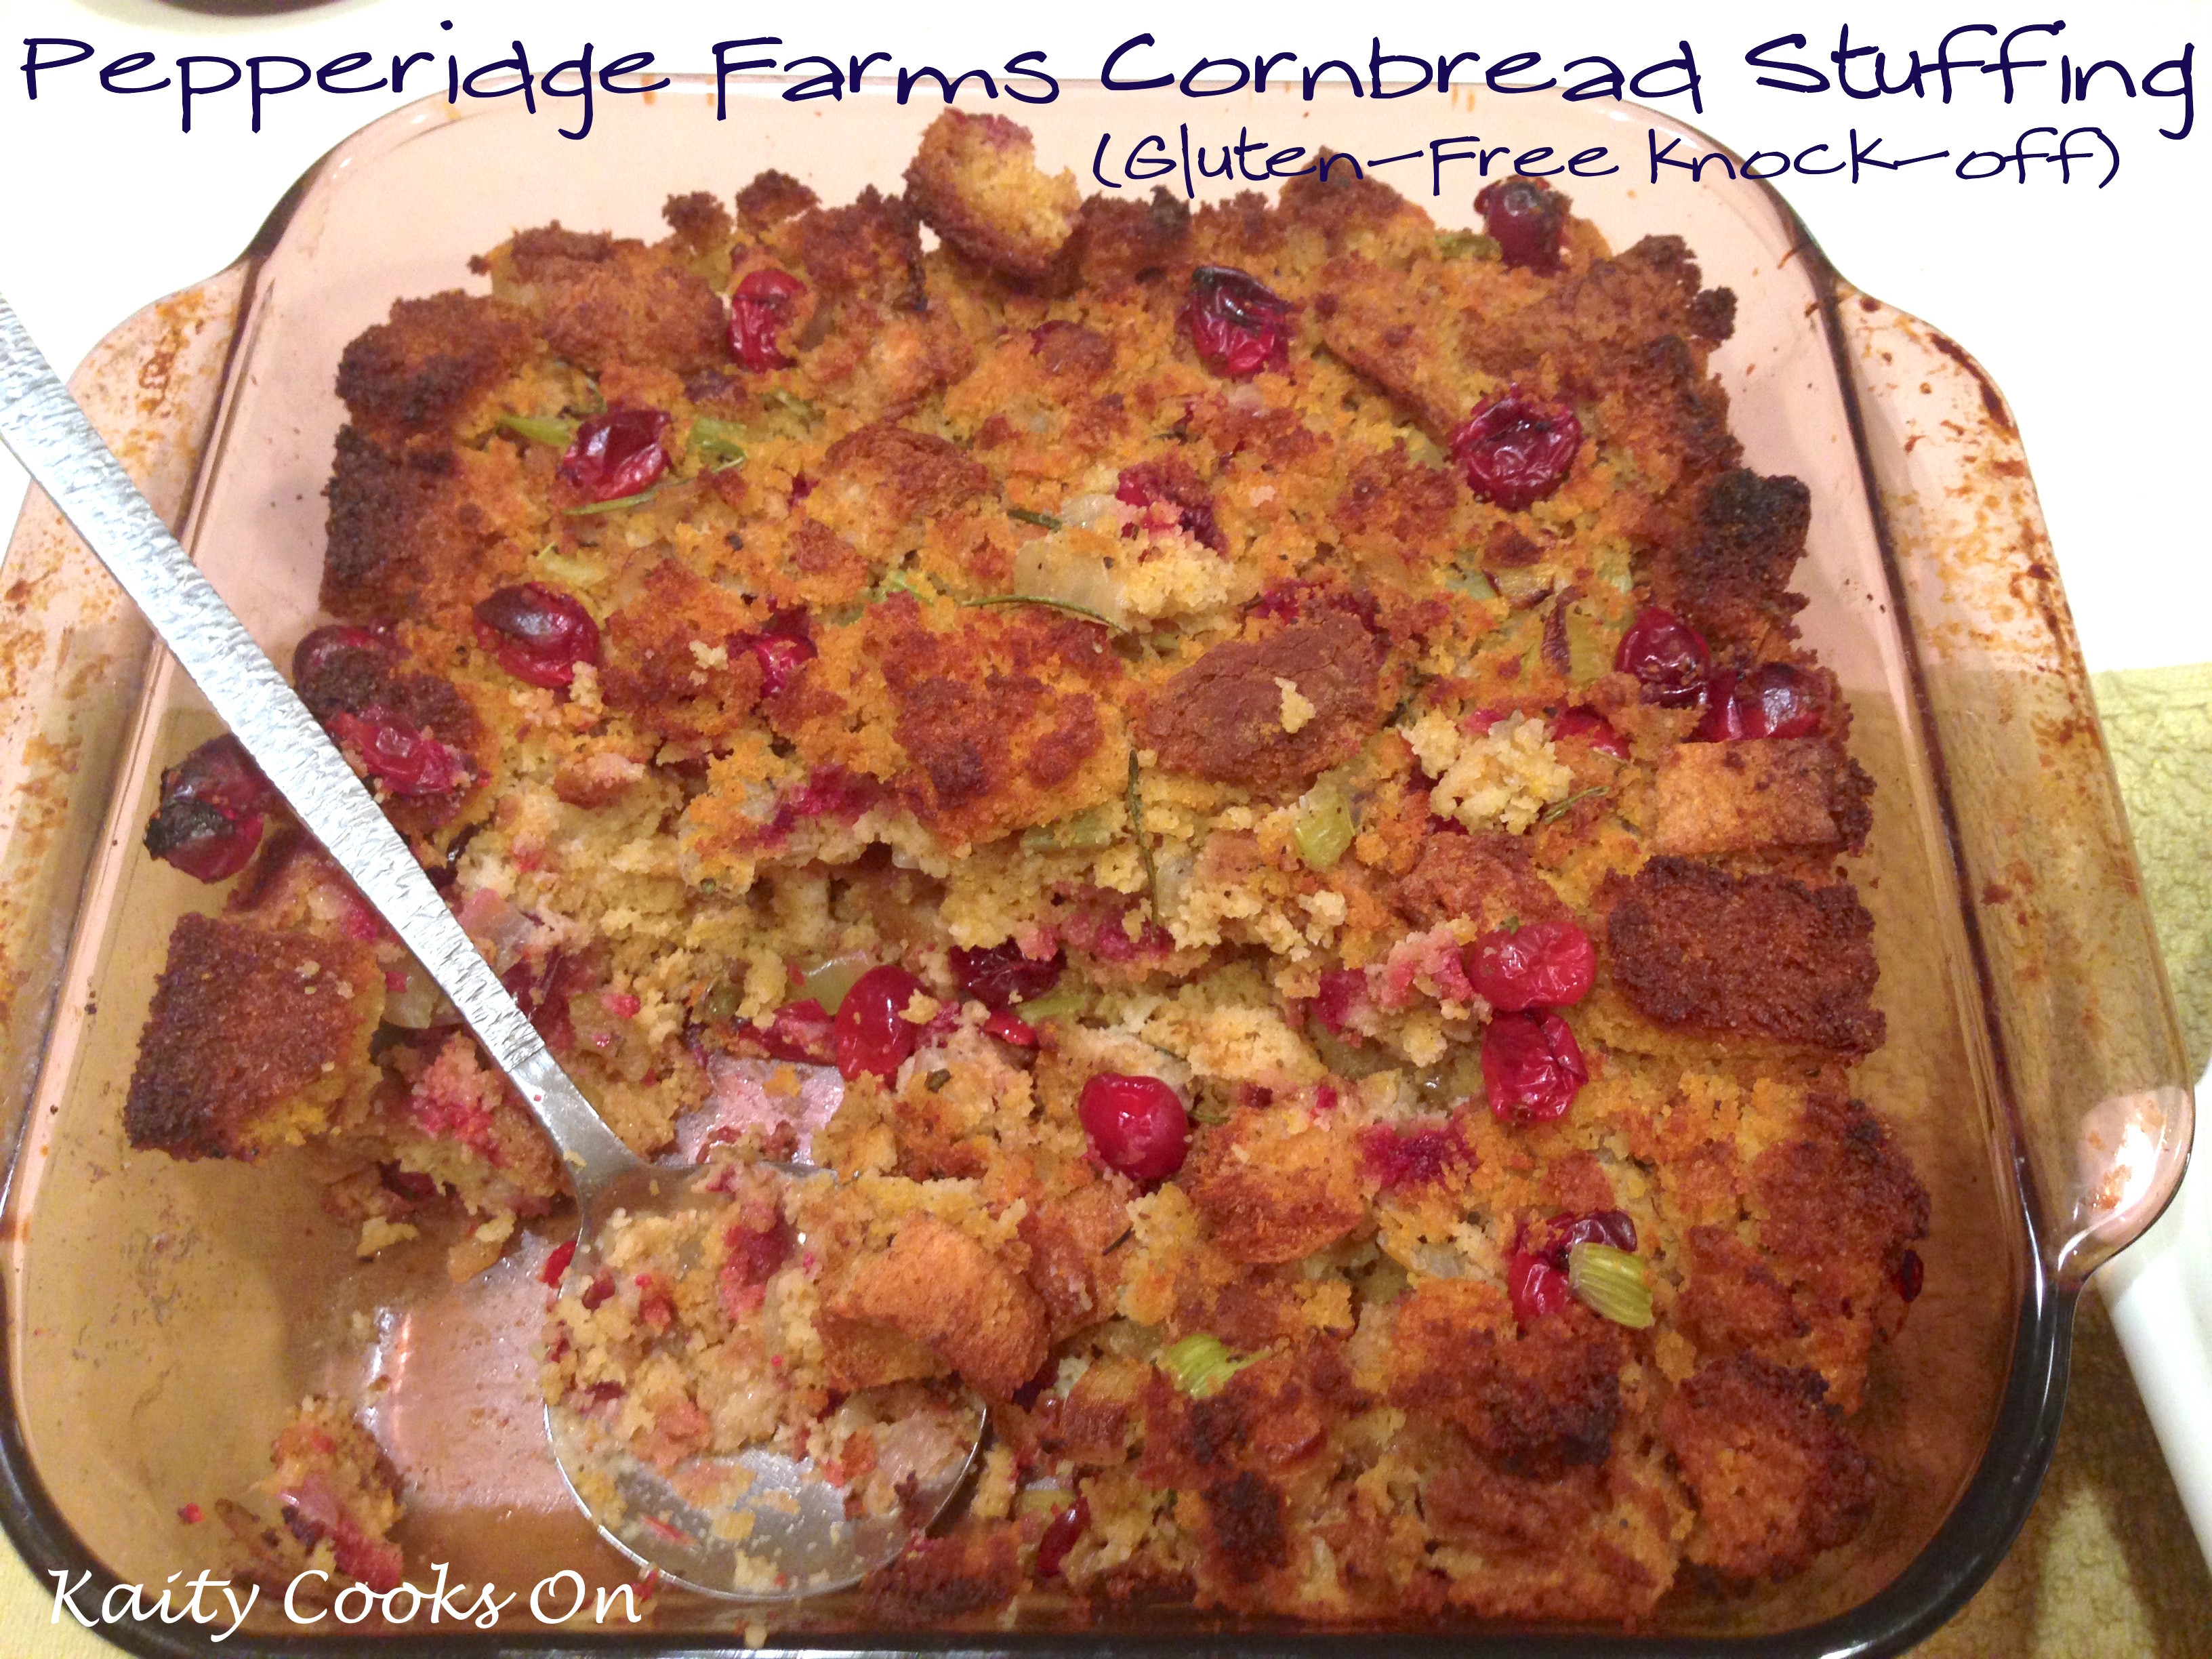 Pepperidge Farm Cornbread Stuffing  pepperidge farm cornbread stuffing